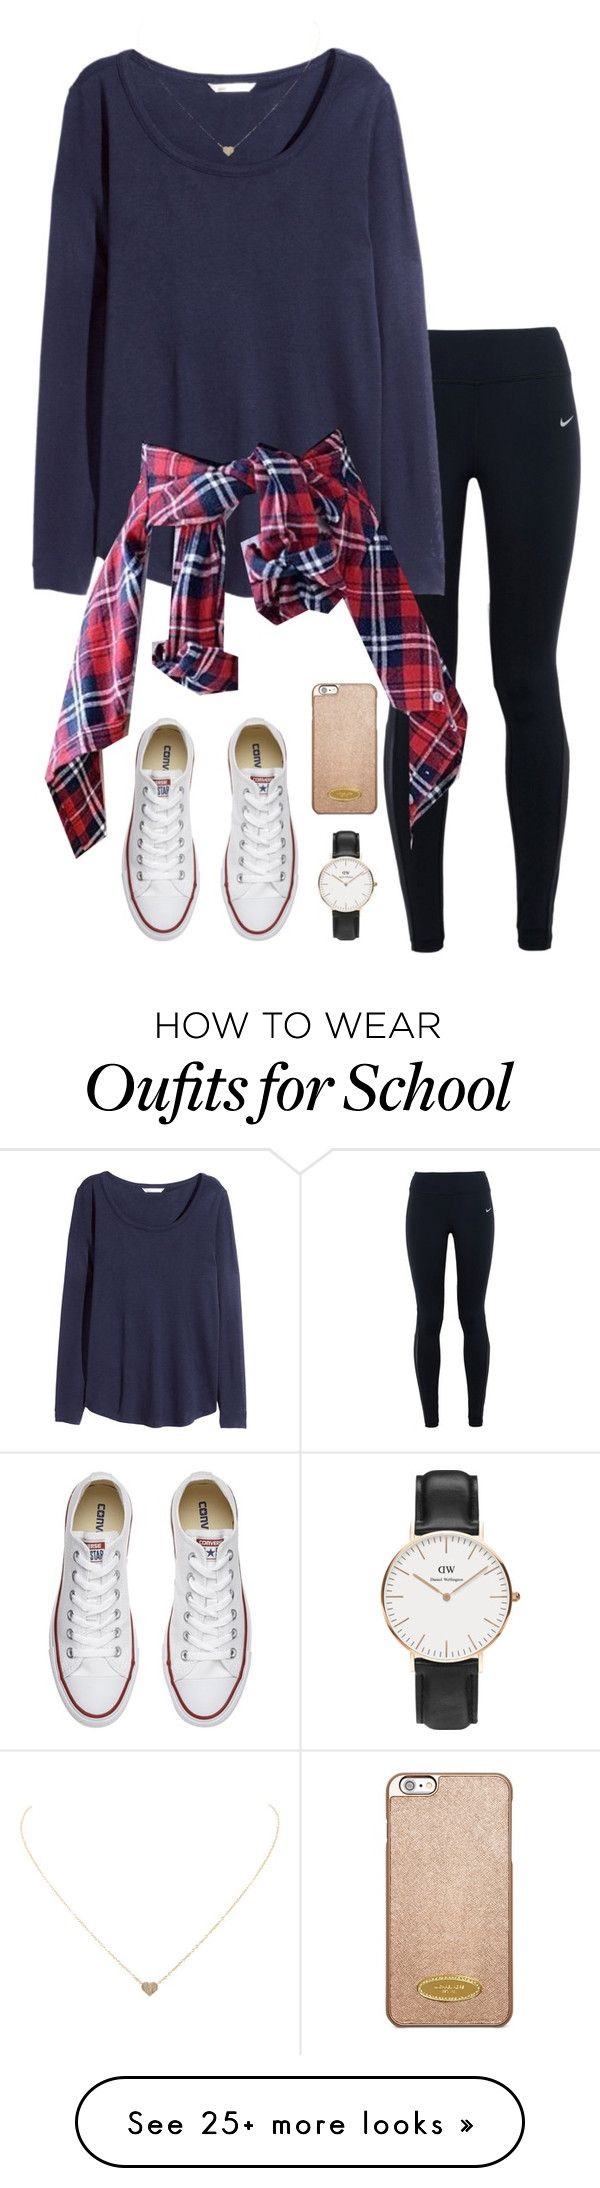 School today by ksarak on Polyvore featuring NIKE, HM, Humble Chic, Daniel Wellington, Michael Kors and Converse